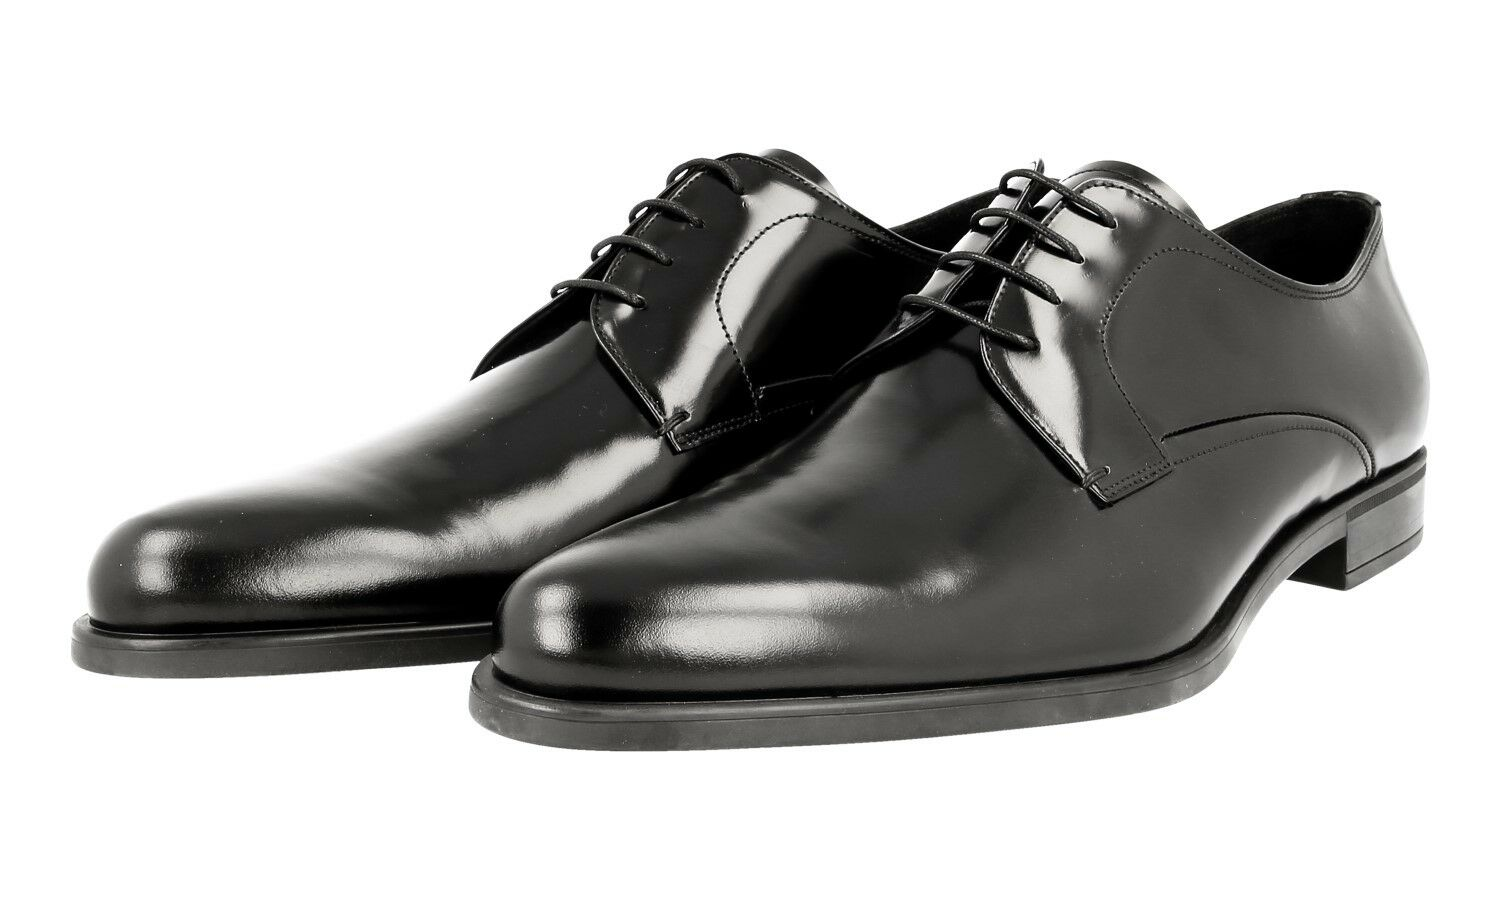 AUTHENTIC LUXURY PRADA BUSINESS SHOES 2EE146 BLACK NEW 9,5 43,5 44